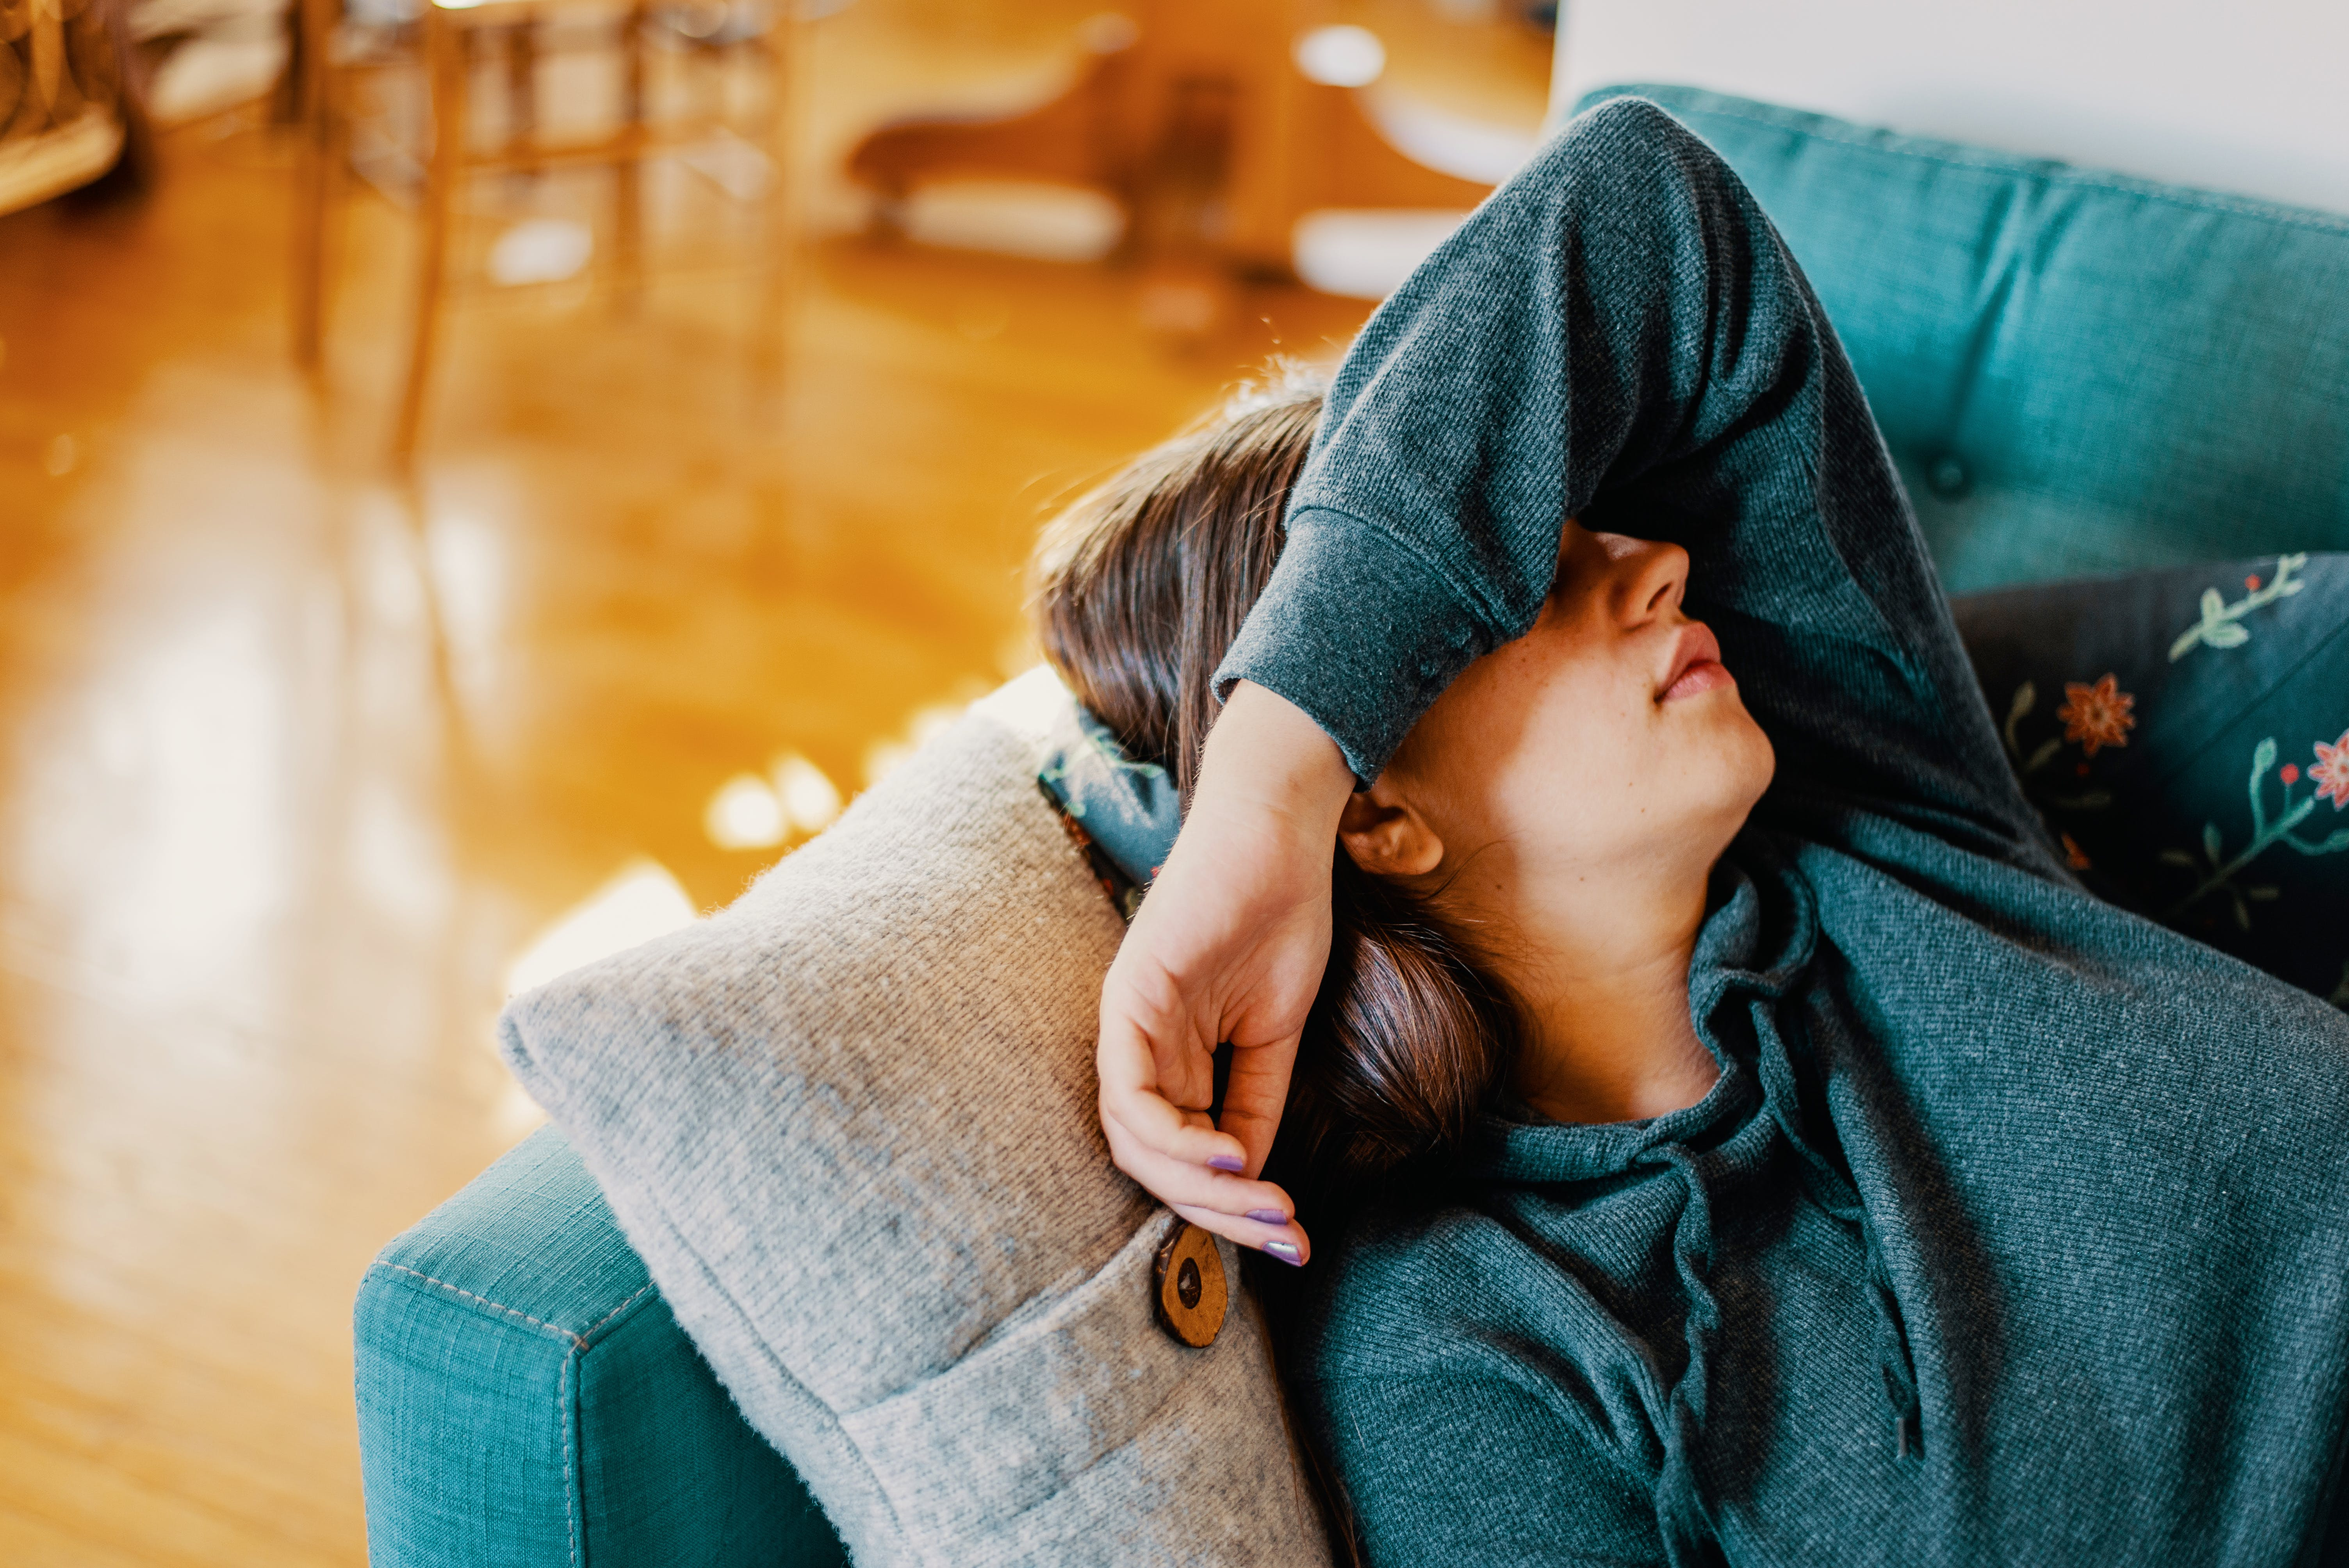 Best CBD Capsules 10 These Are The Best CBD Capsules For Sleep, Pain and More